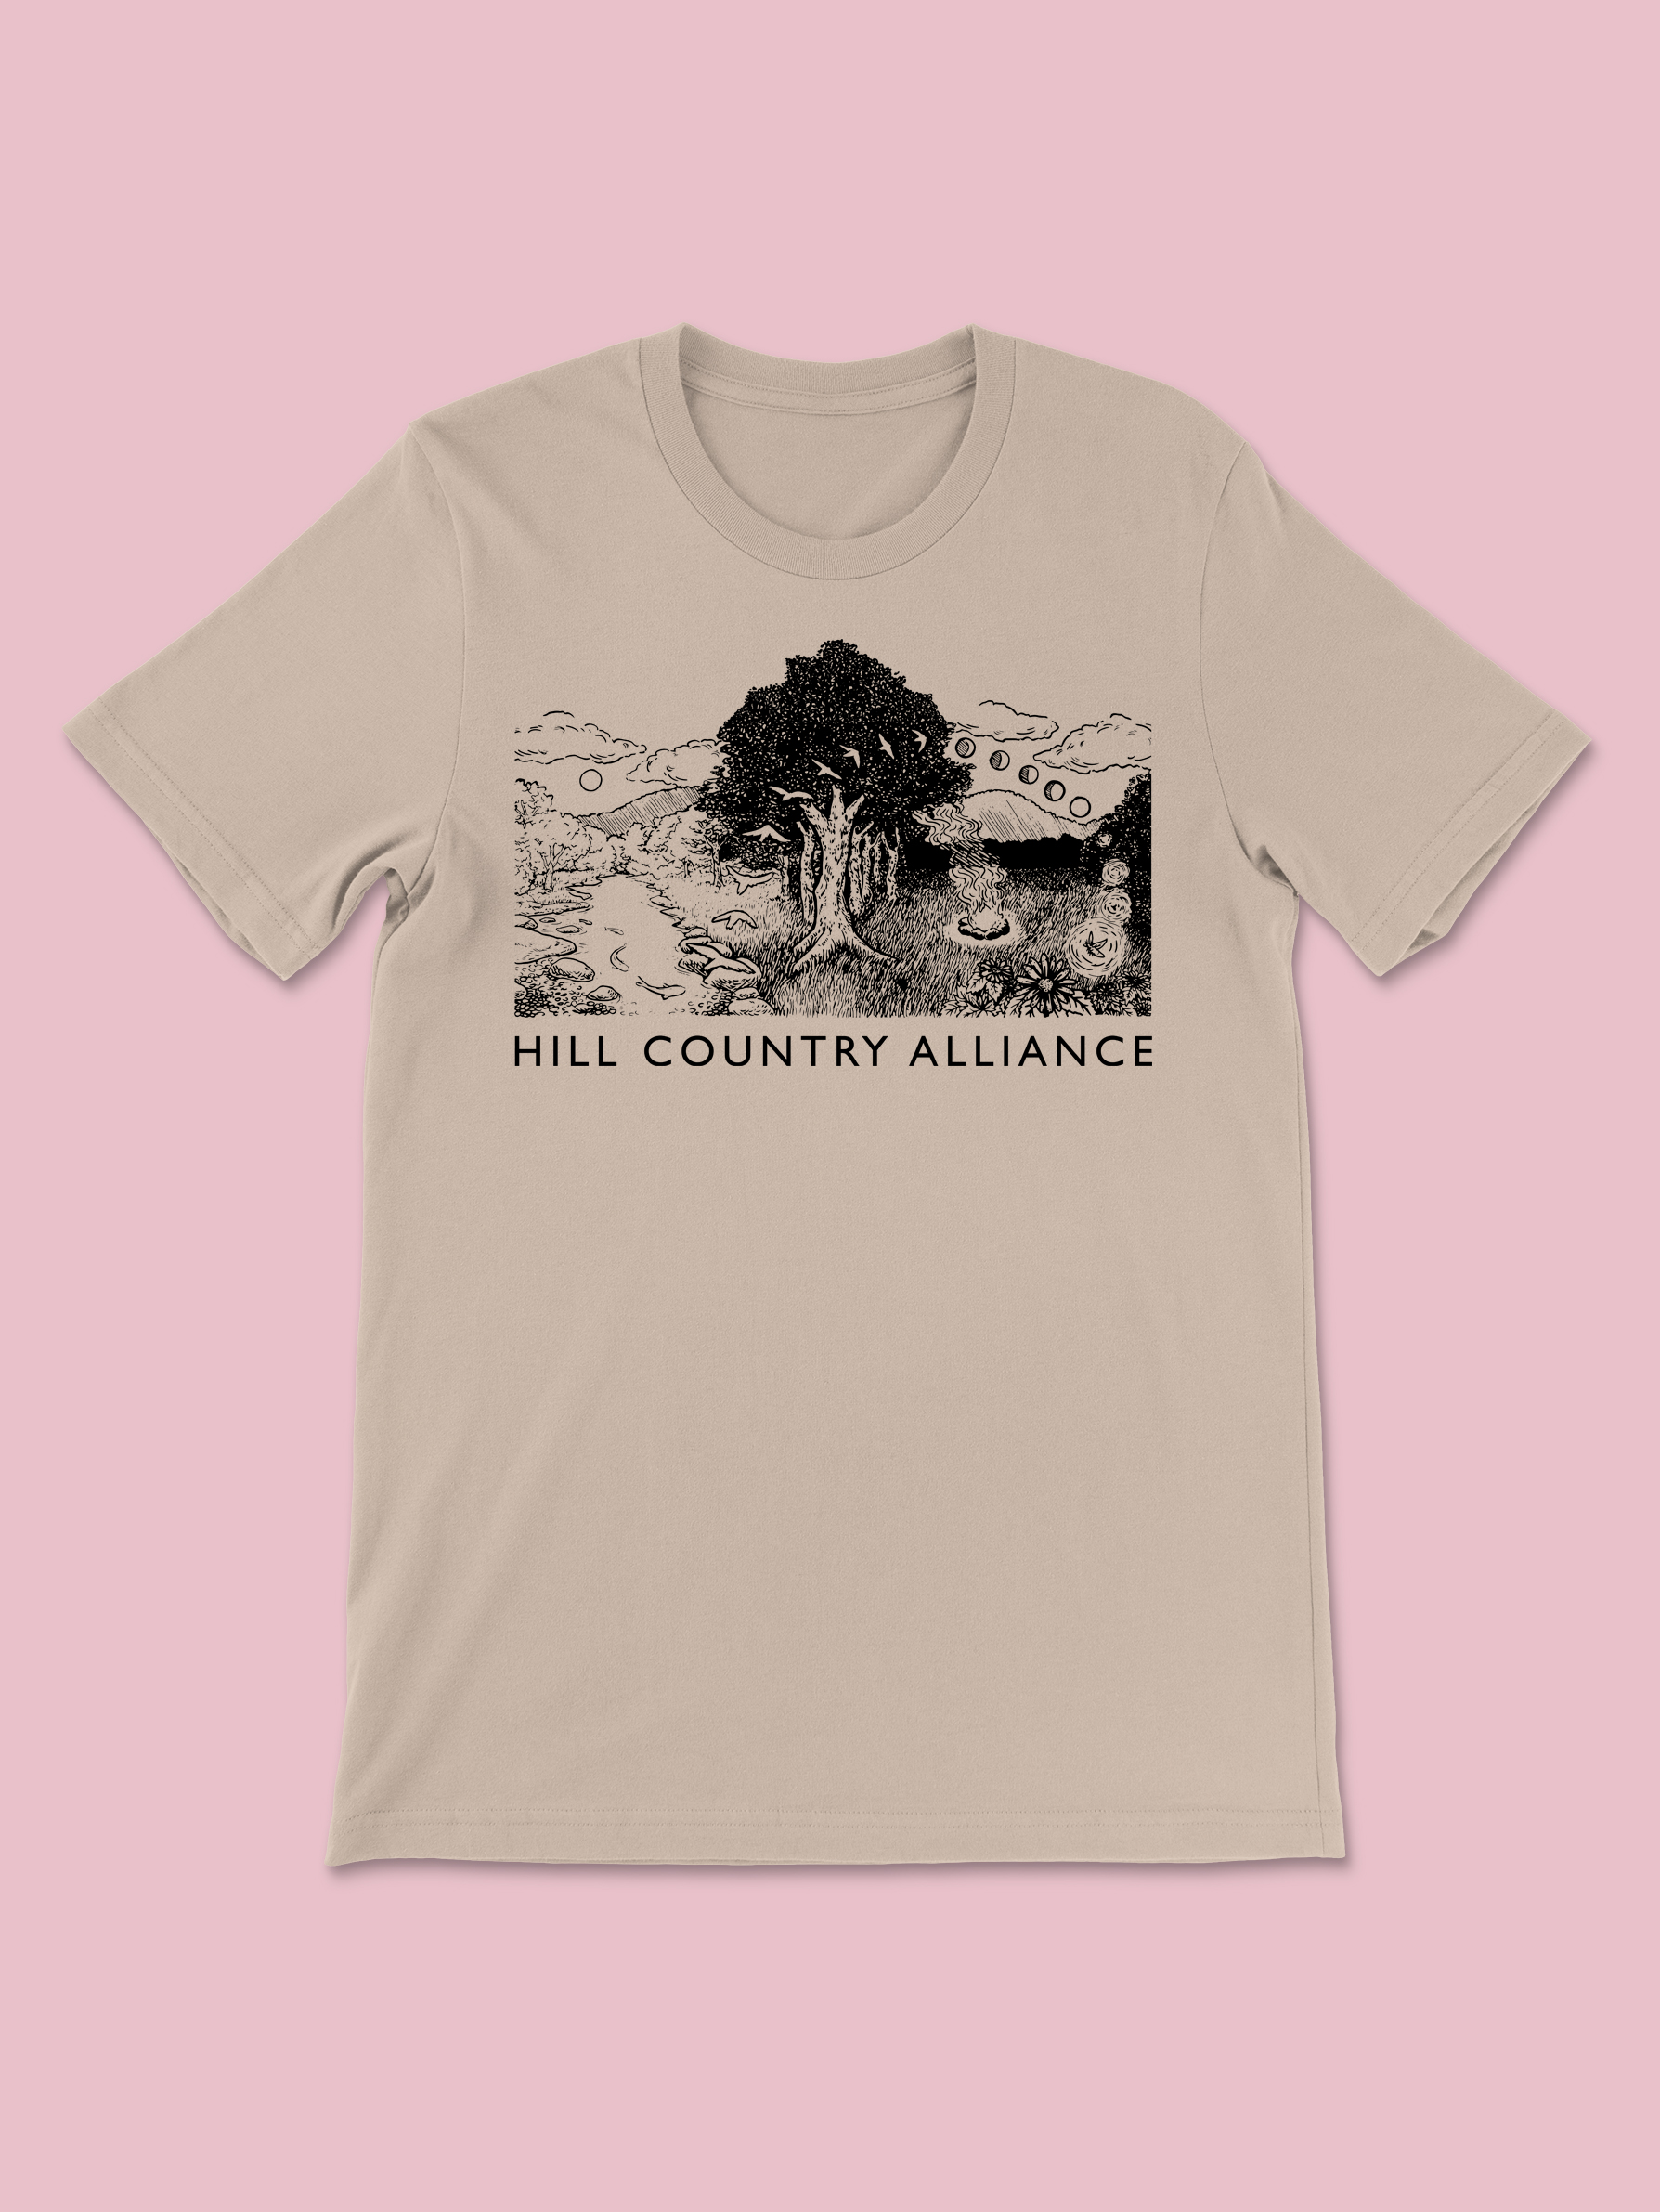 Hill Country Alliance Limited Edition Design – Meet The Artist: Olivia Gray